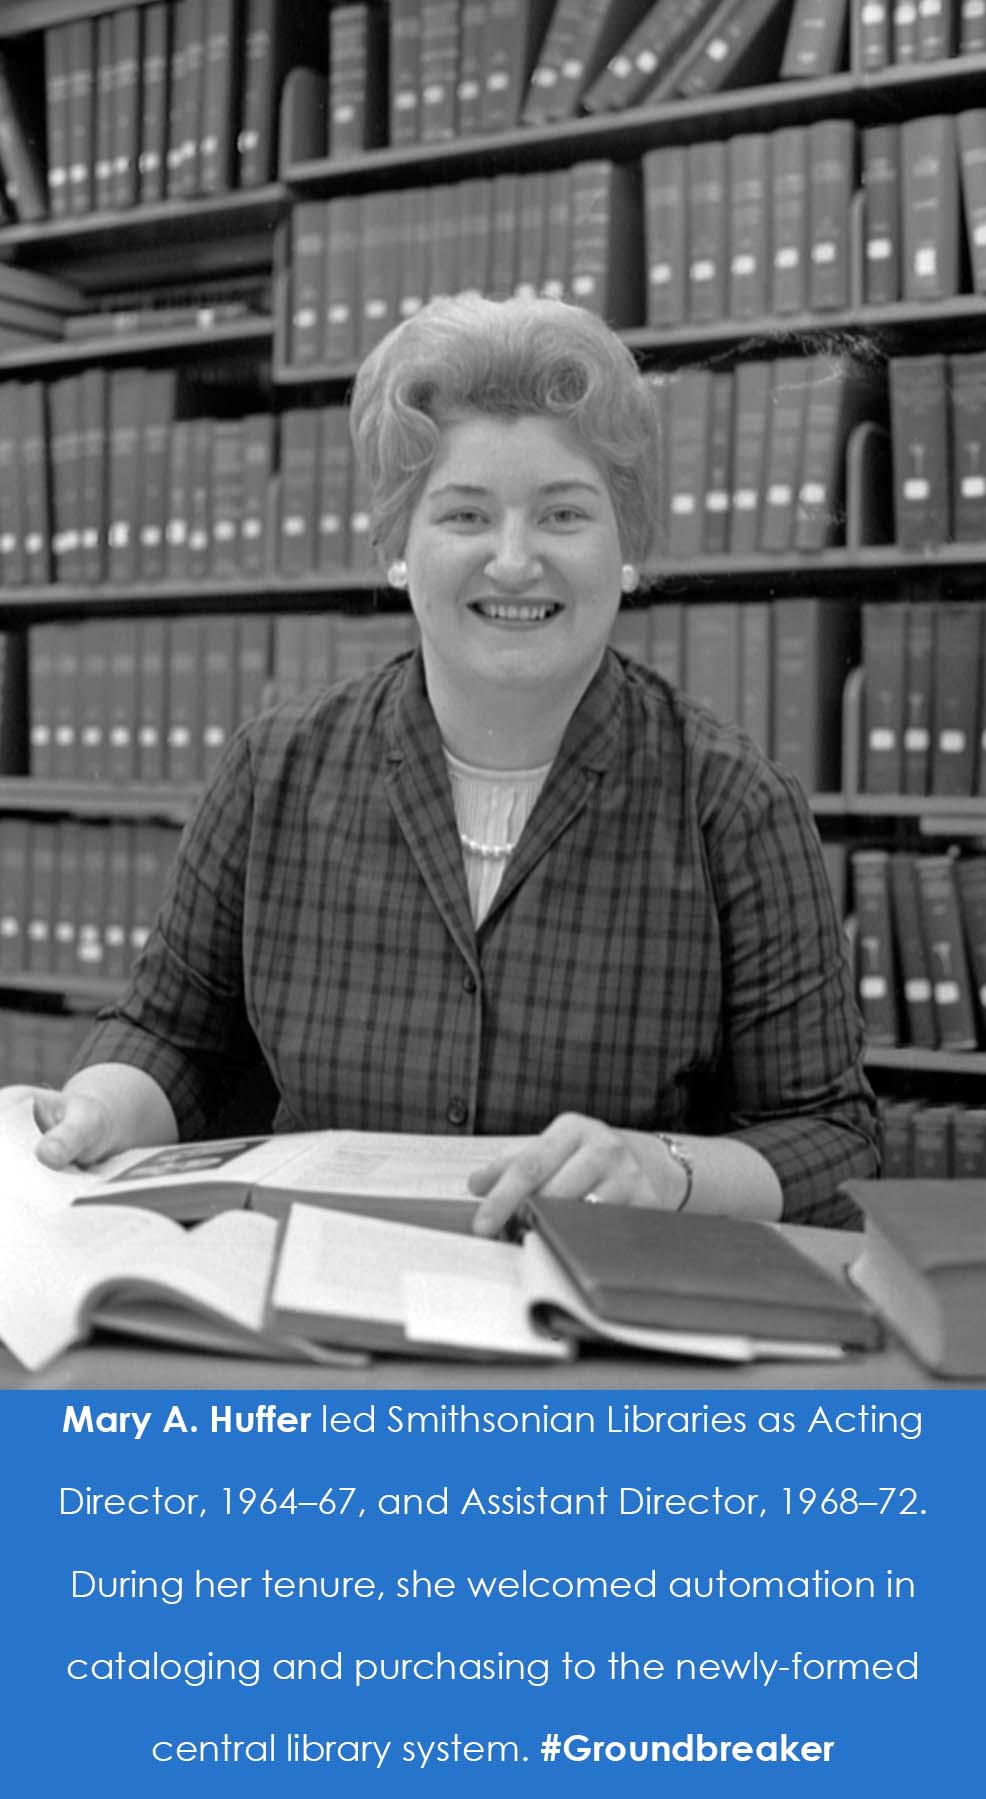 A woman sits at a desk in front of an open book.